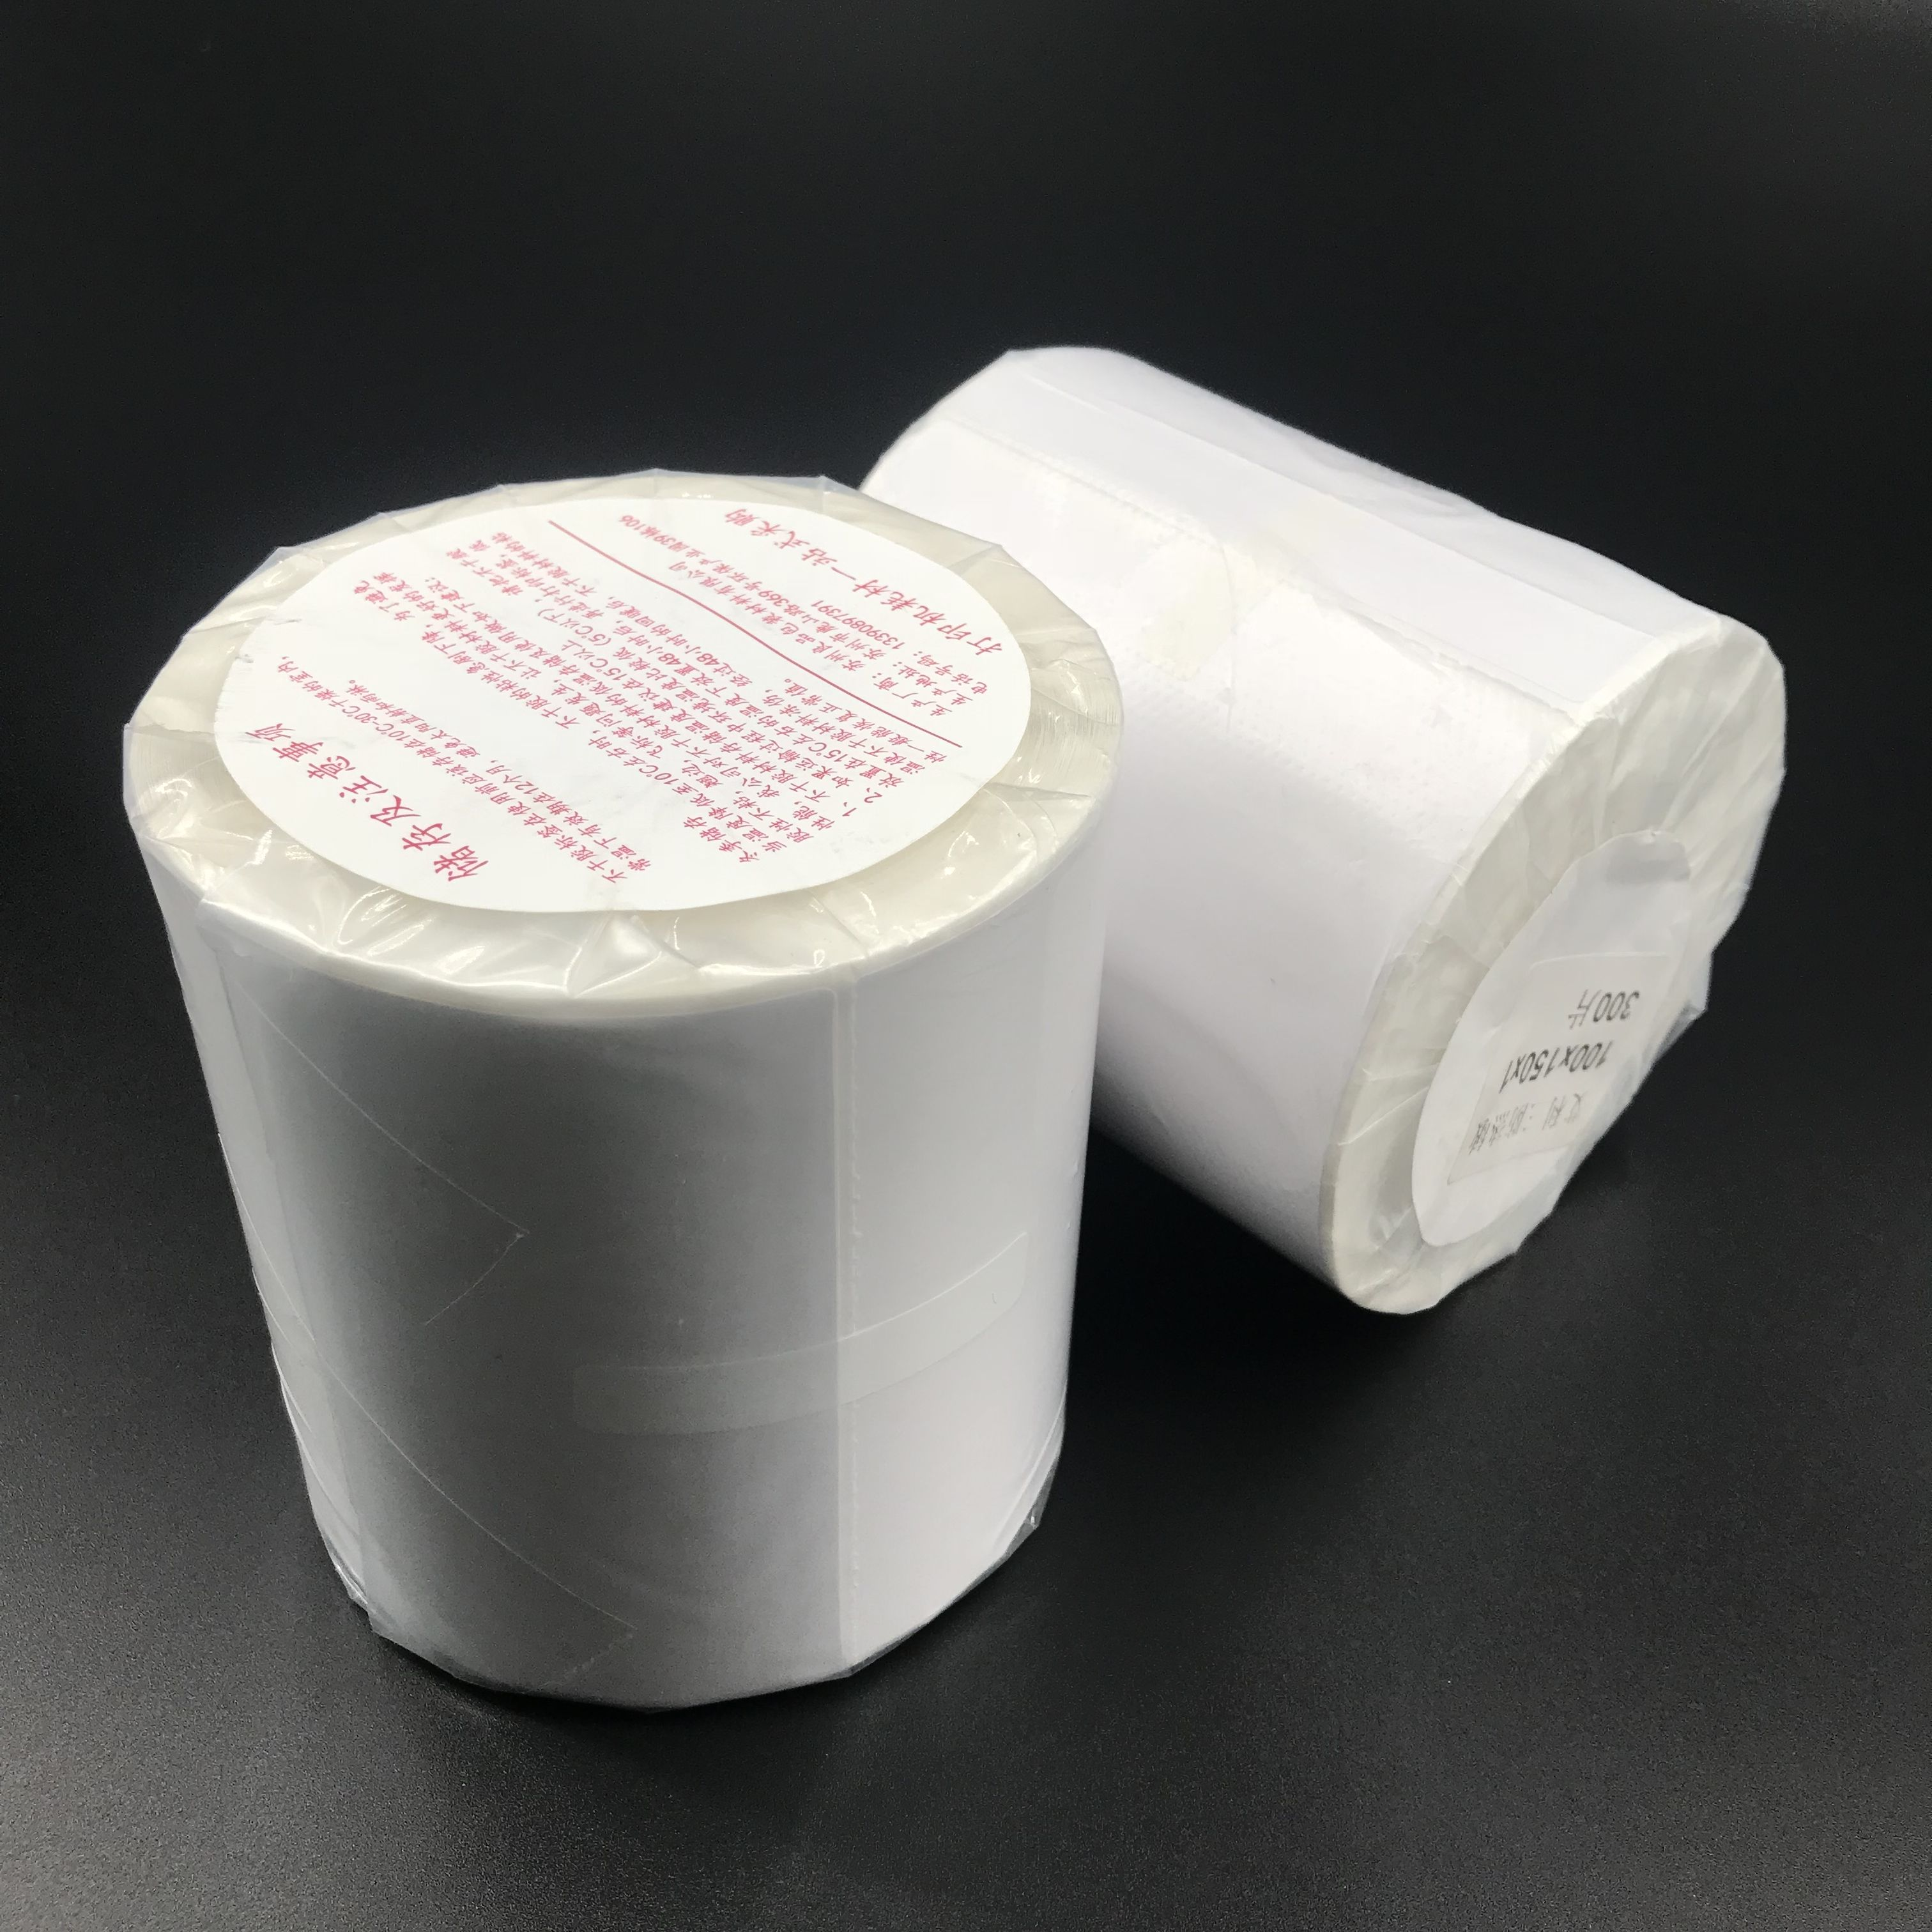 For Shipping Labels [ White Label ] White Label Roll Thermal Manufacturer Blank White 102*152 Cm Top Thermal Label Rolls